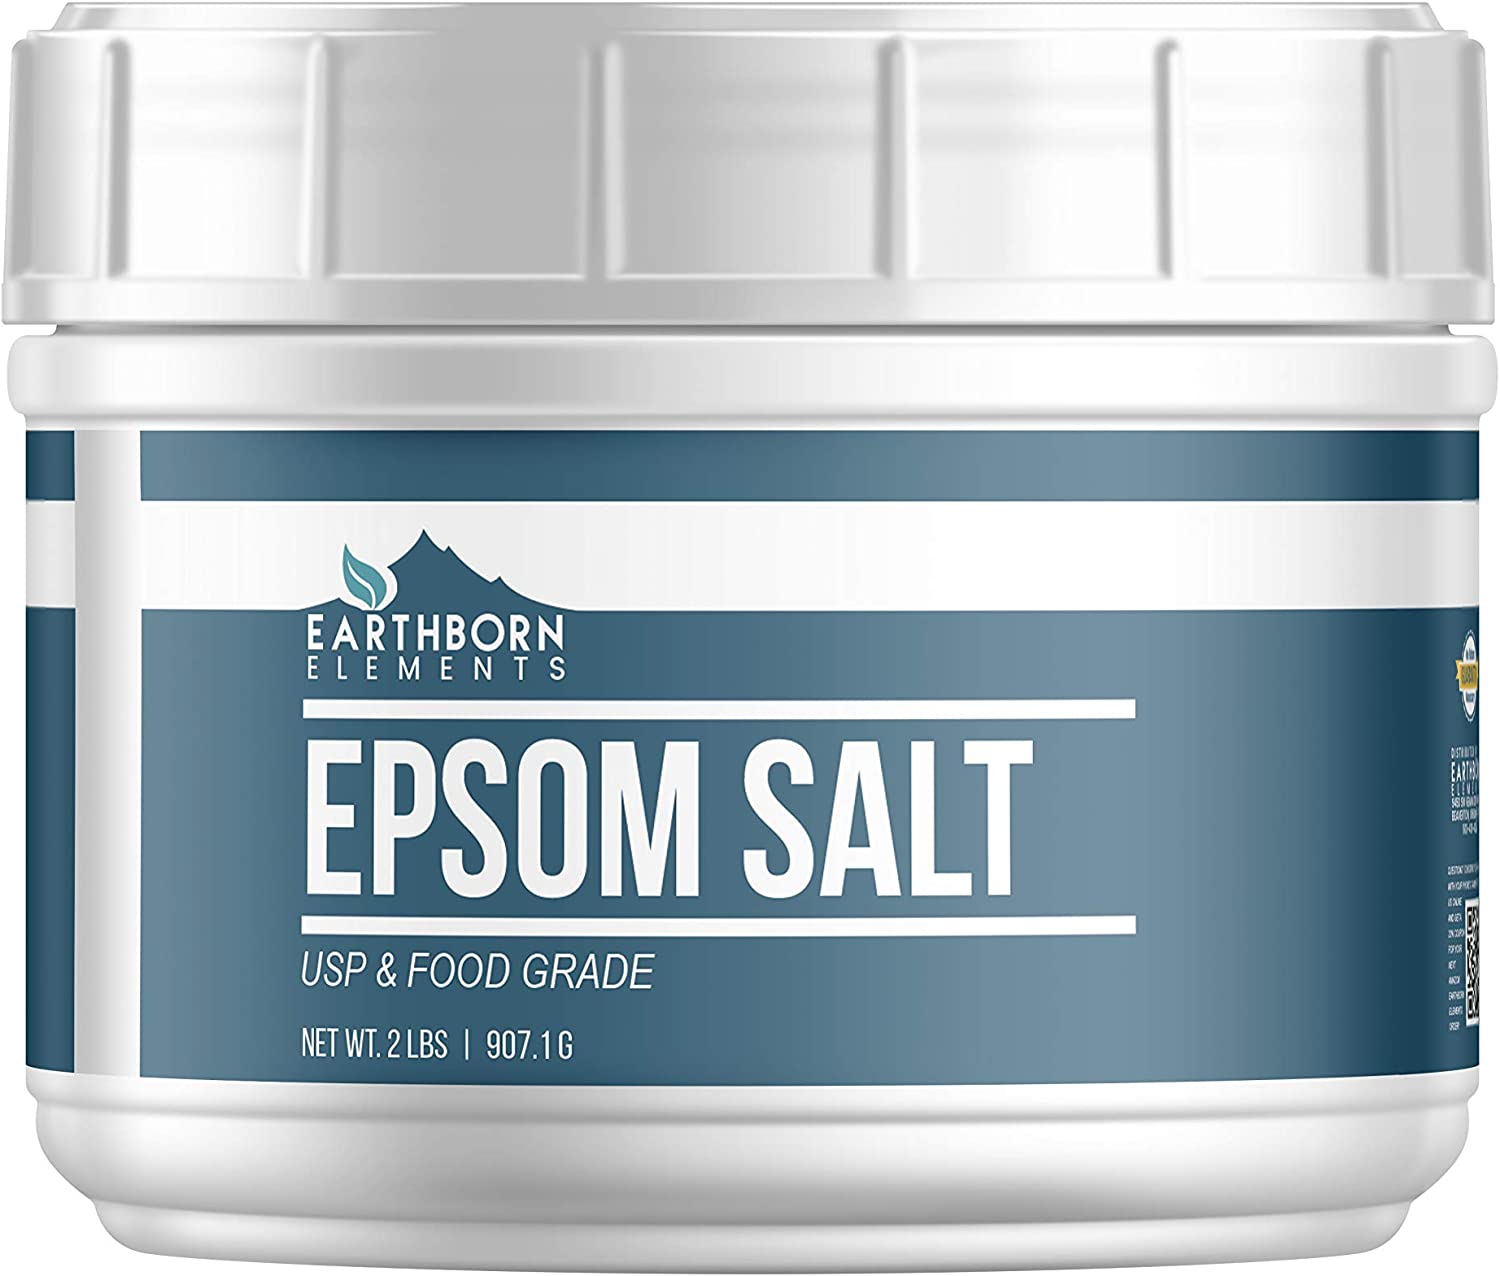 Epsom Salt (2 lb.) by Earthborn Elements, Resealable Tub, Magnesium Sulfate Soaking Solution, All-Natural, Highest Quality & Purity, USP Grade